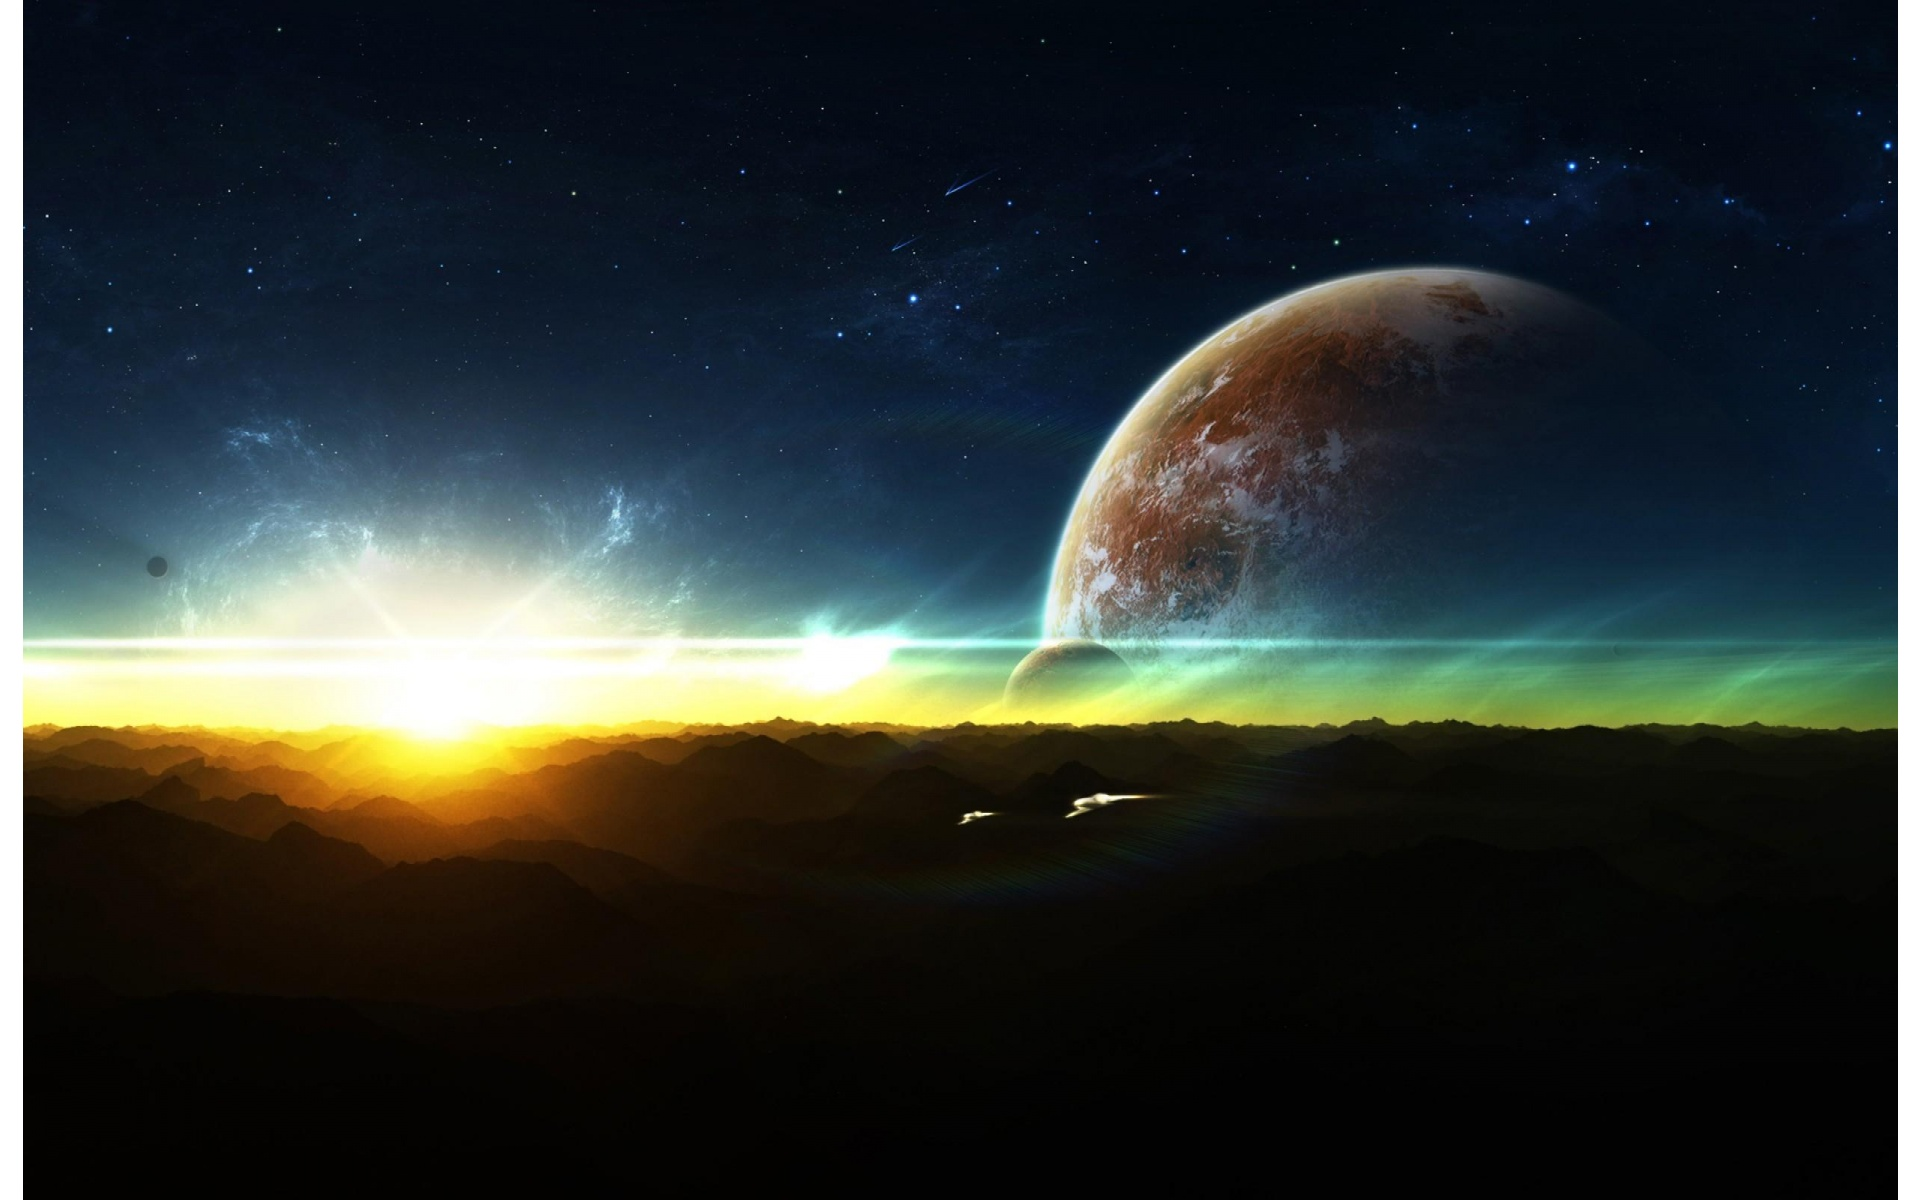 Rising Space Wallpapers - 1920x1200 - 329995